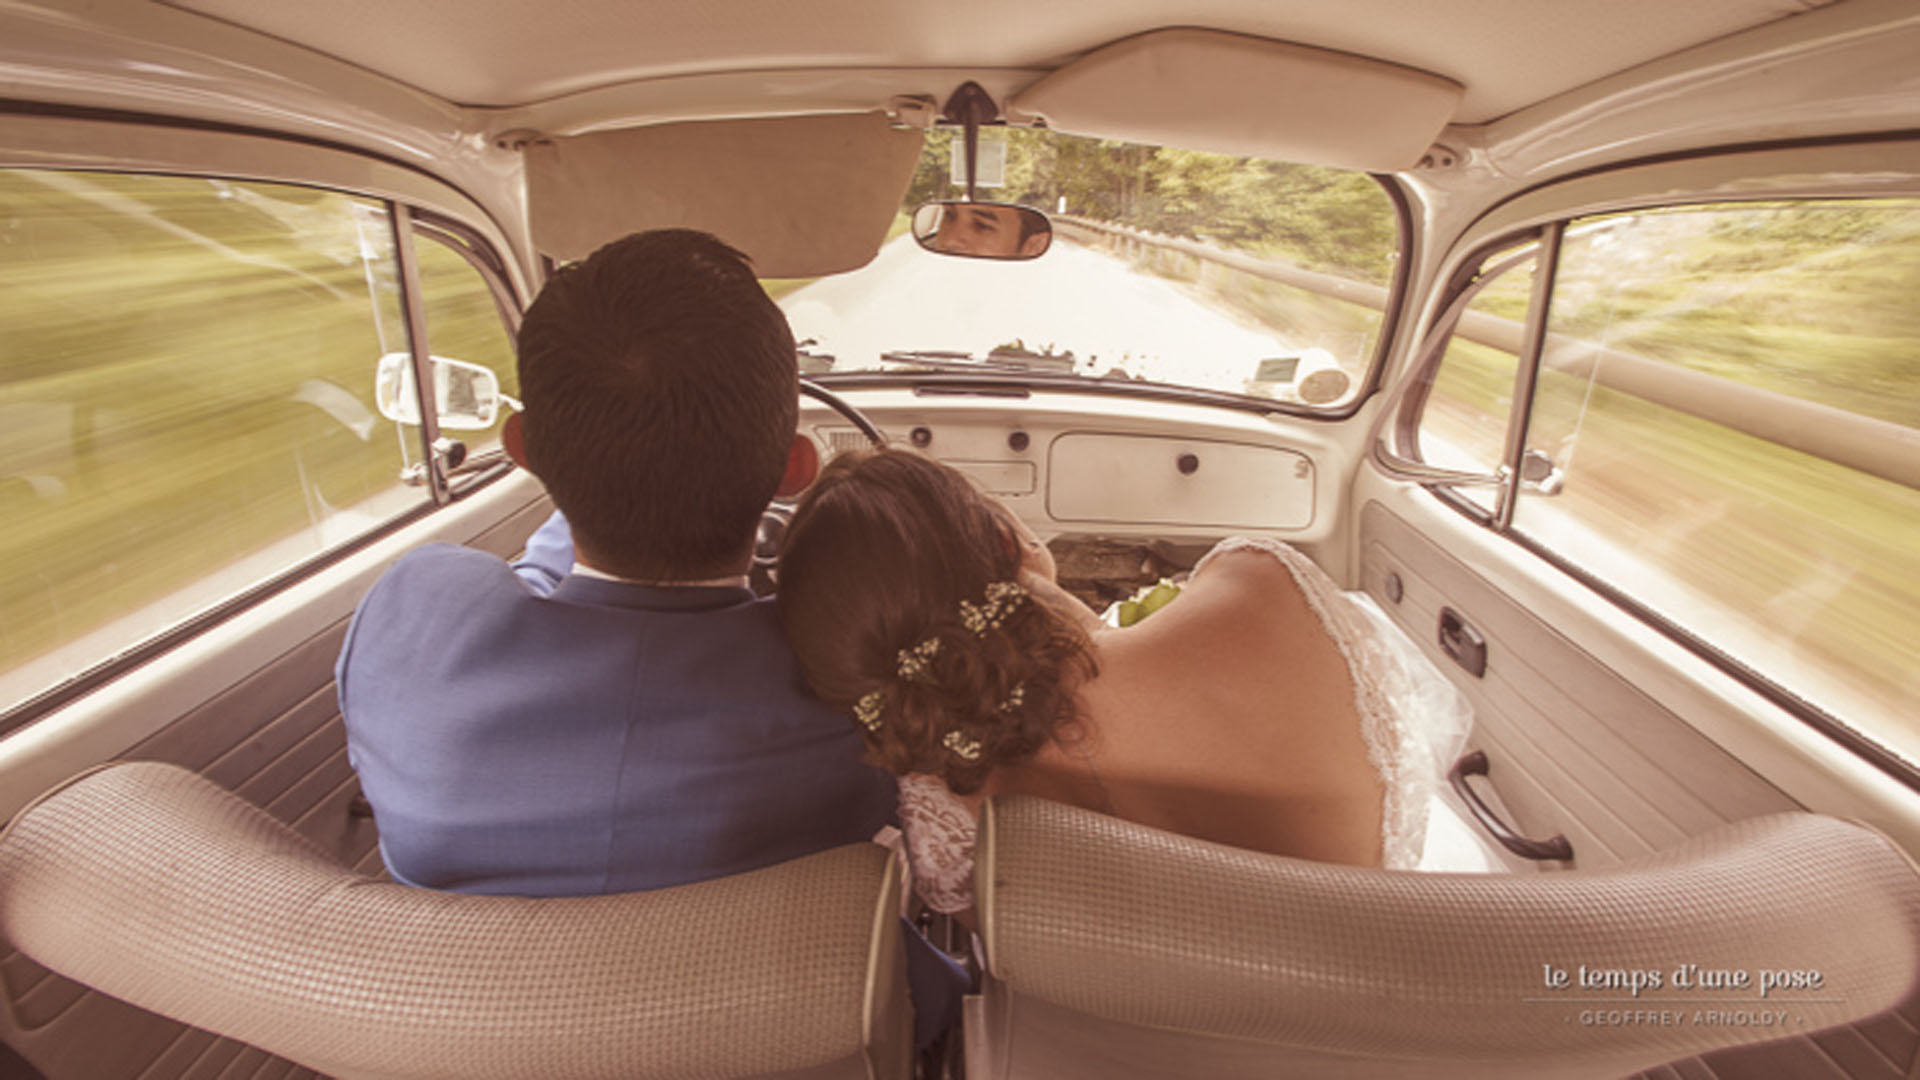 3/Mariages/Couples/maries-voiture-fin-mariage.jpg